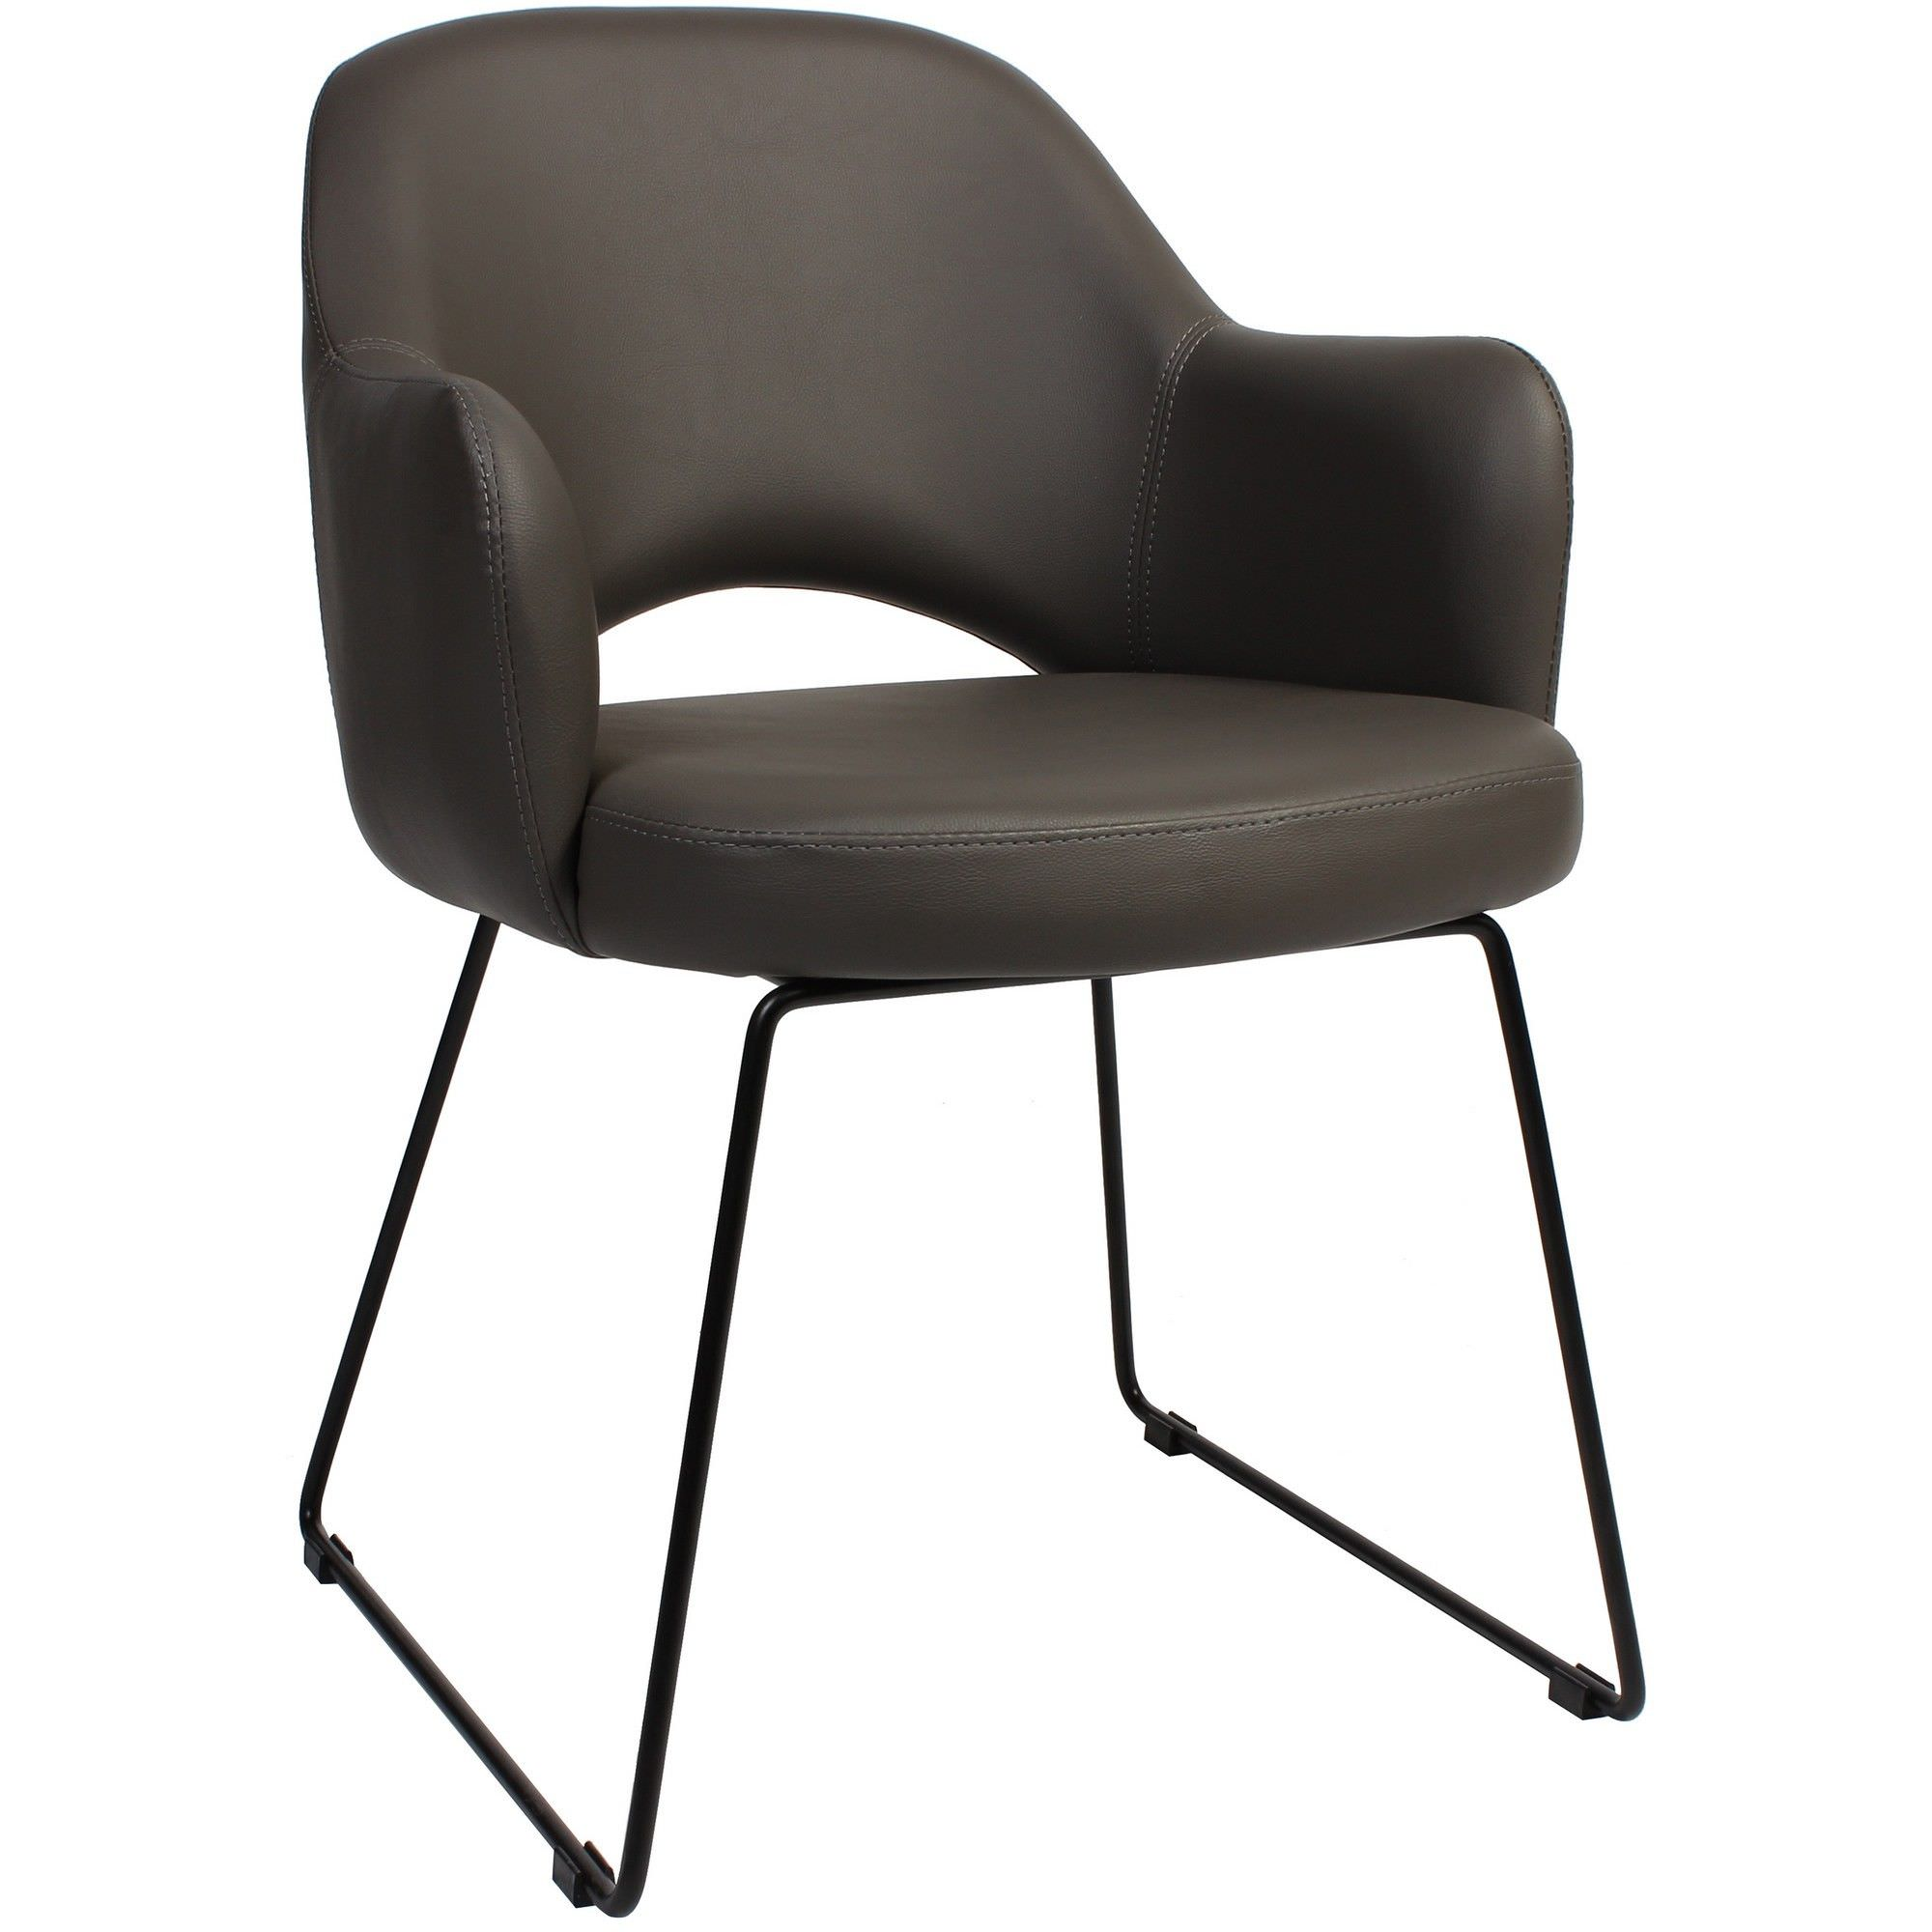 Albury Commercial Grade Vinyl Dining Armchair, Metal Sled Leg, Charcoal / Black